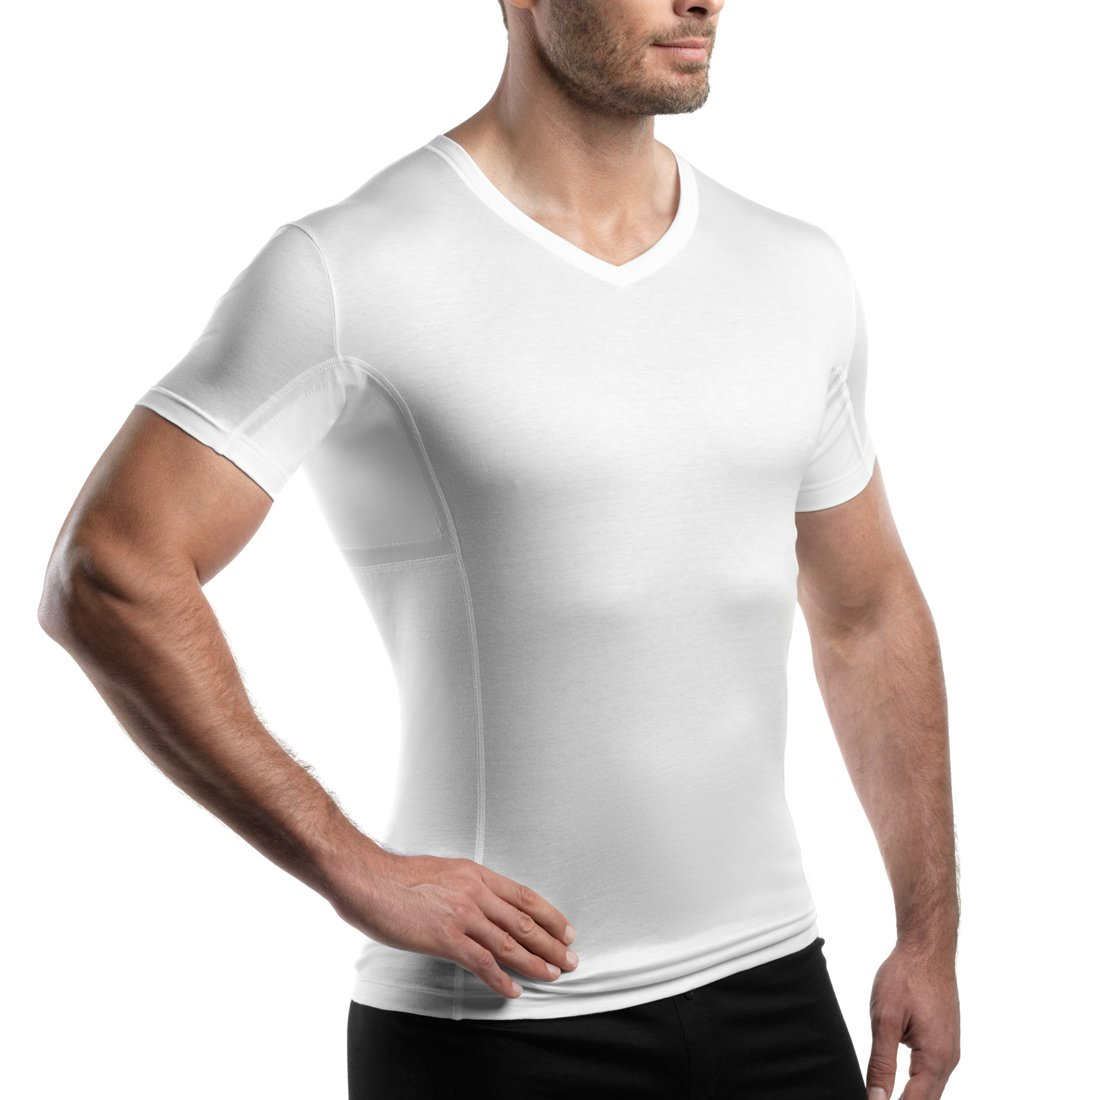 Amazon Laulas Sweat Stain Proof Undershirt With Sewn In Pocket